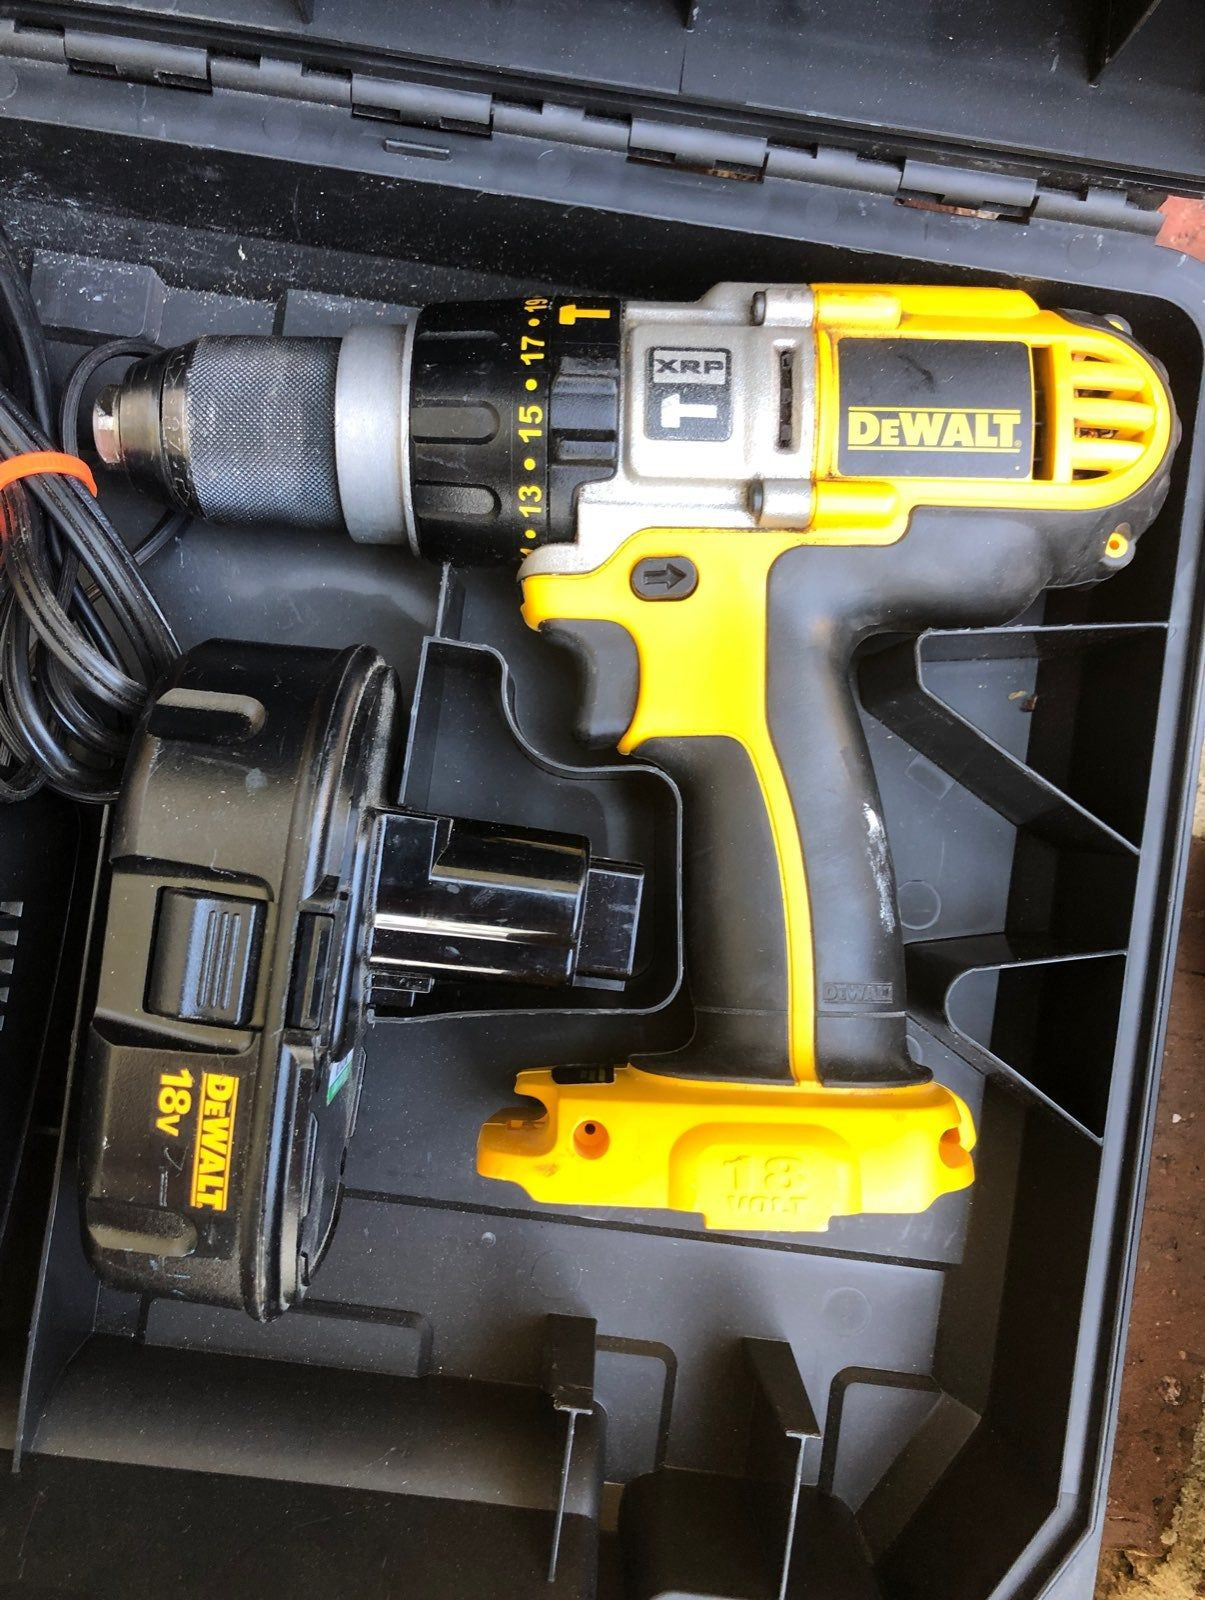 Diy How To Revive A Dead Li Ion Power Tool Battery Youtube Power Tool Battery Cordless Tools Cordless Power Tools